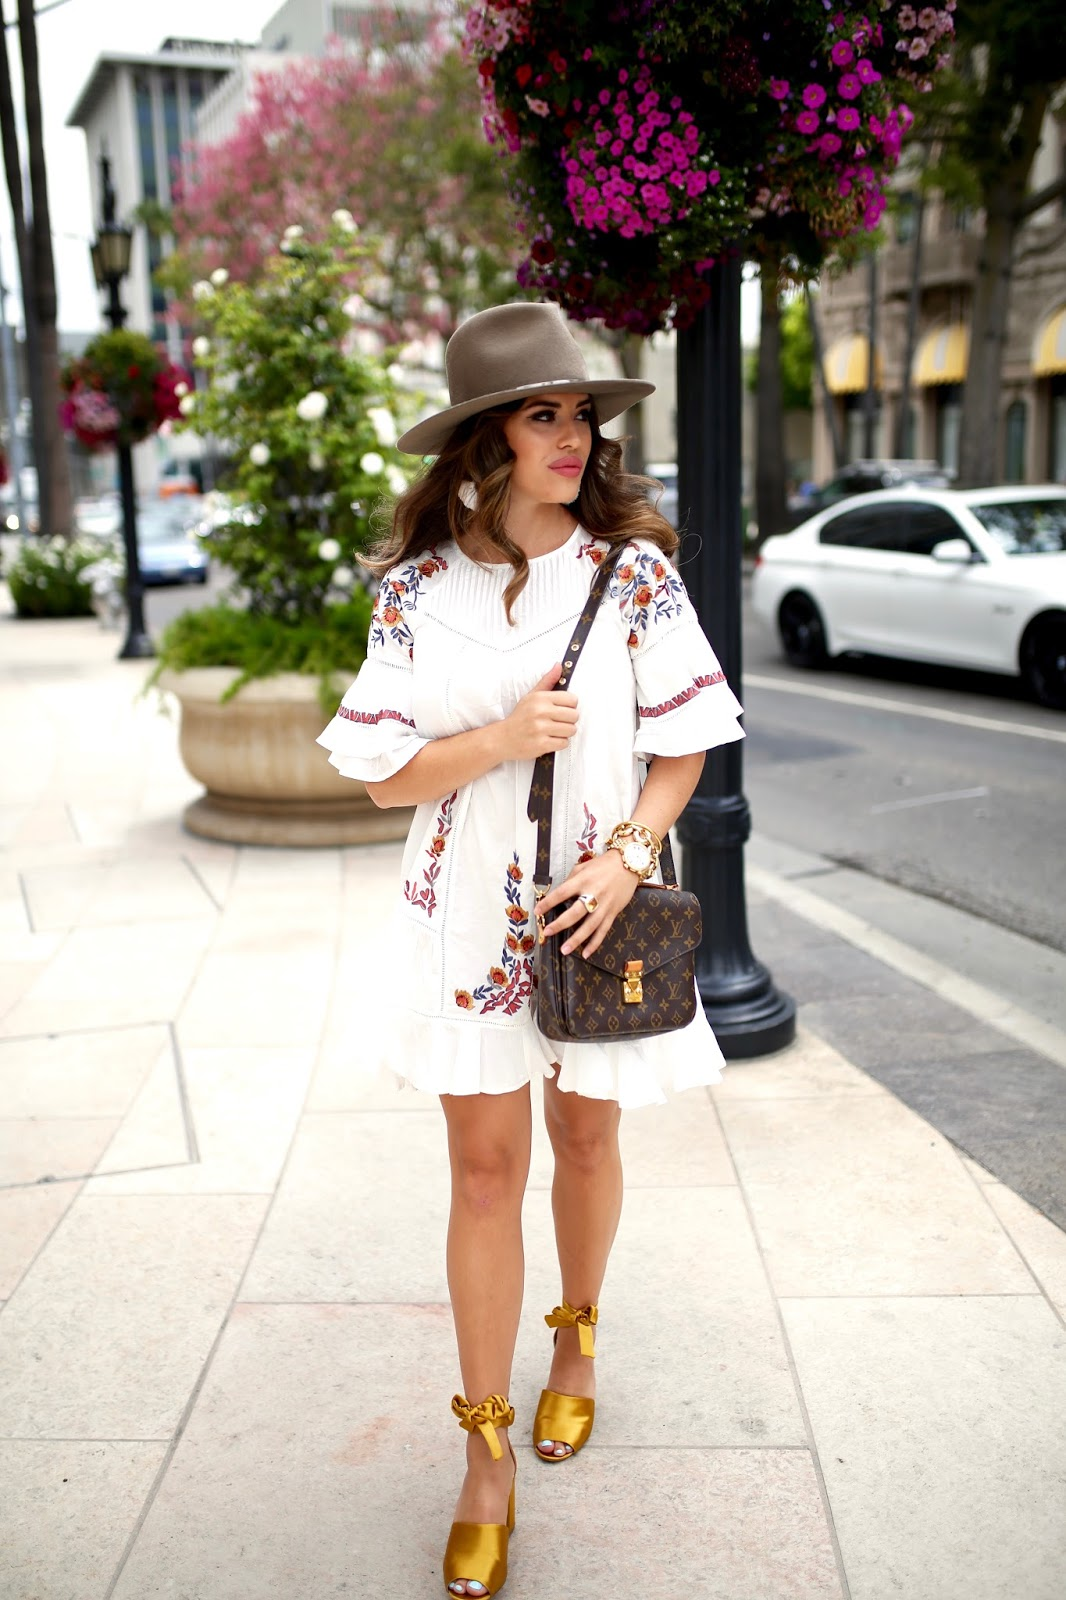 White dress with sleeves, free people fall dress, Louis Vuitton Pochette Metis, Louis Vuitton Pochette Metis fall styled, gold michele watch, gold sam edelman heels, gold wrap heels, janessa leone hat, janessa leone alara hat, hat styled for fall, fall transition outfit, flowy white dress, fall transition dress, affordable white dress, rodeo drive style, top new york city blogger, top nyc blogger, LA blogger, blogger style for fall, long hair style, elle harper, elle harper blog